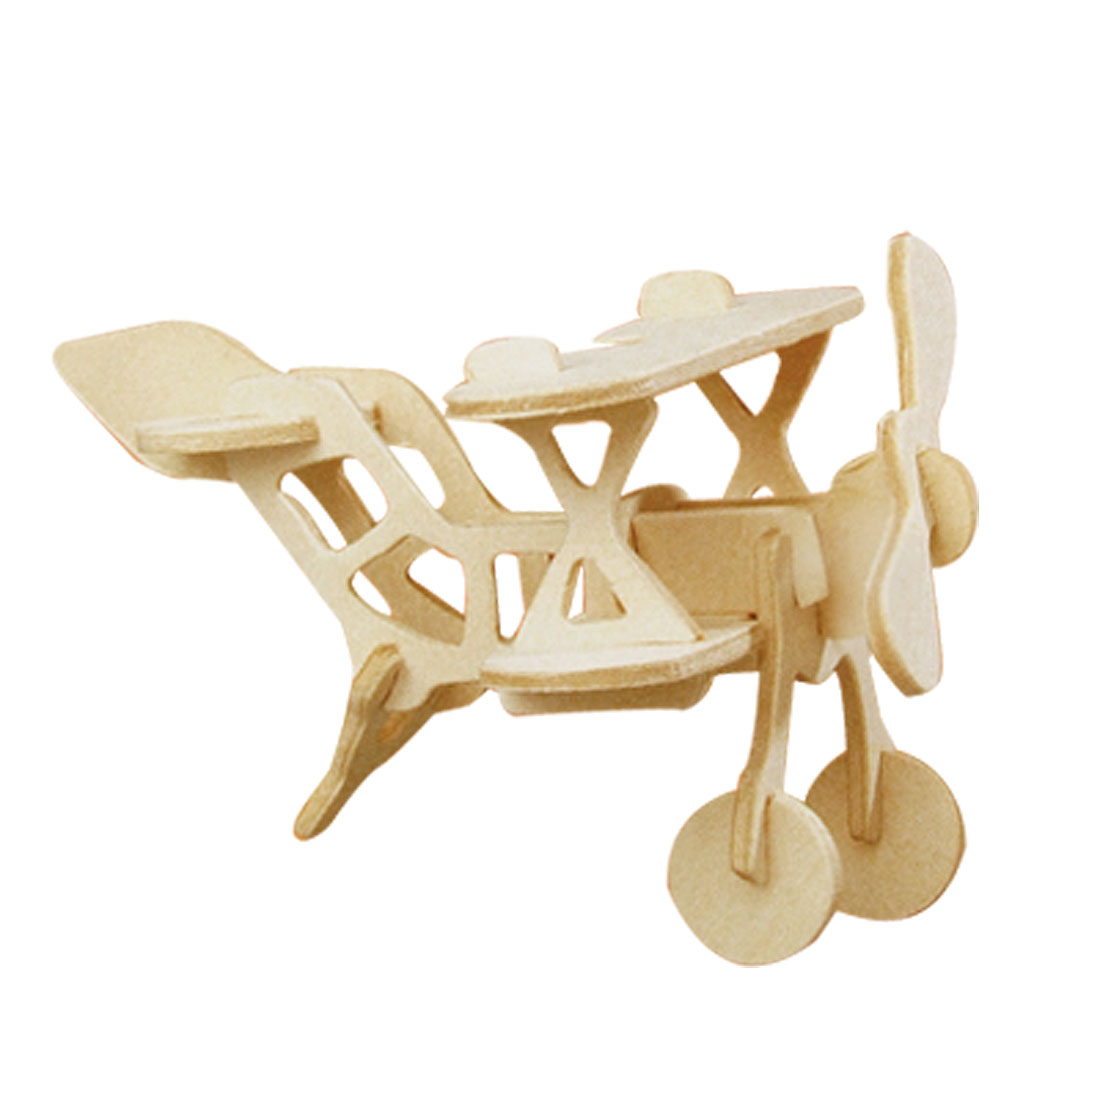 Bi Plane Model DIY Assemble 3D Wood Construction Kit Toy